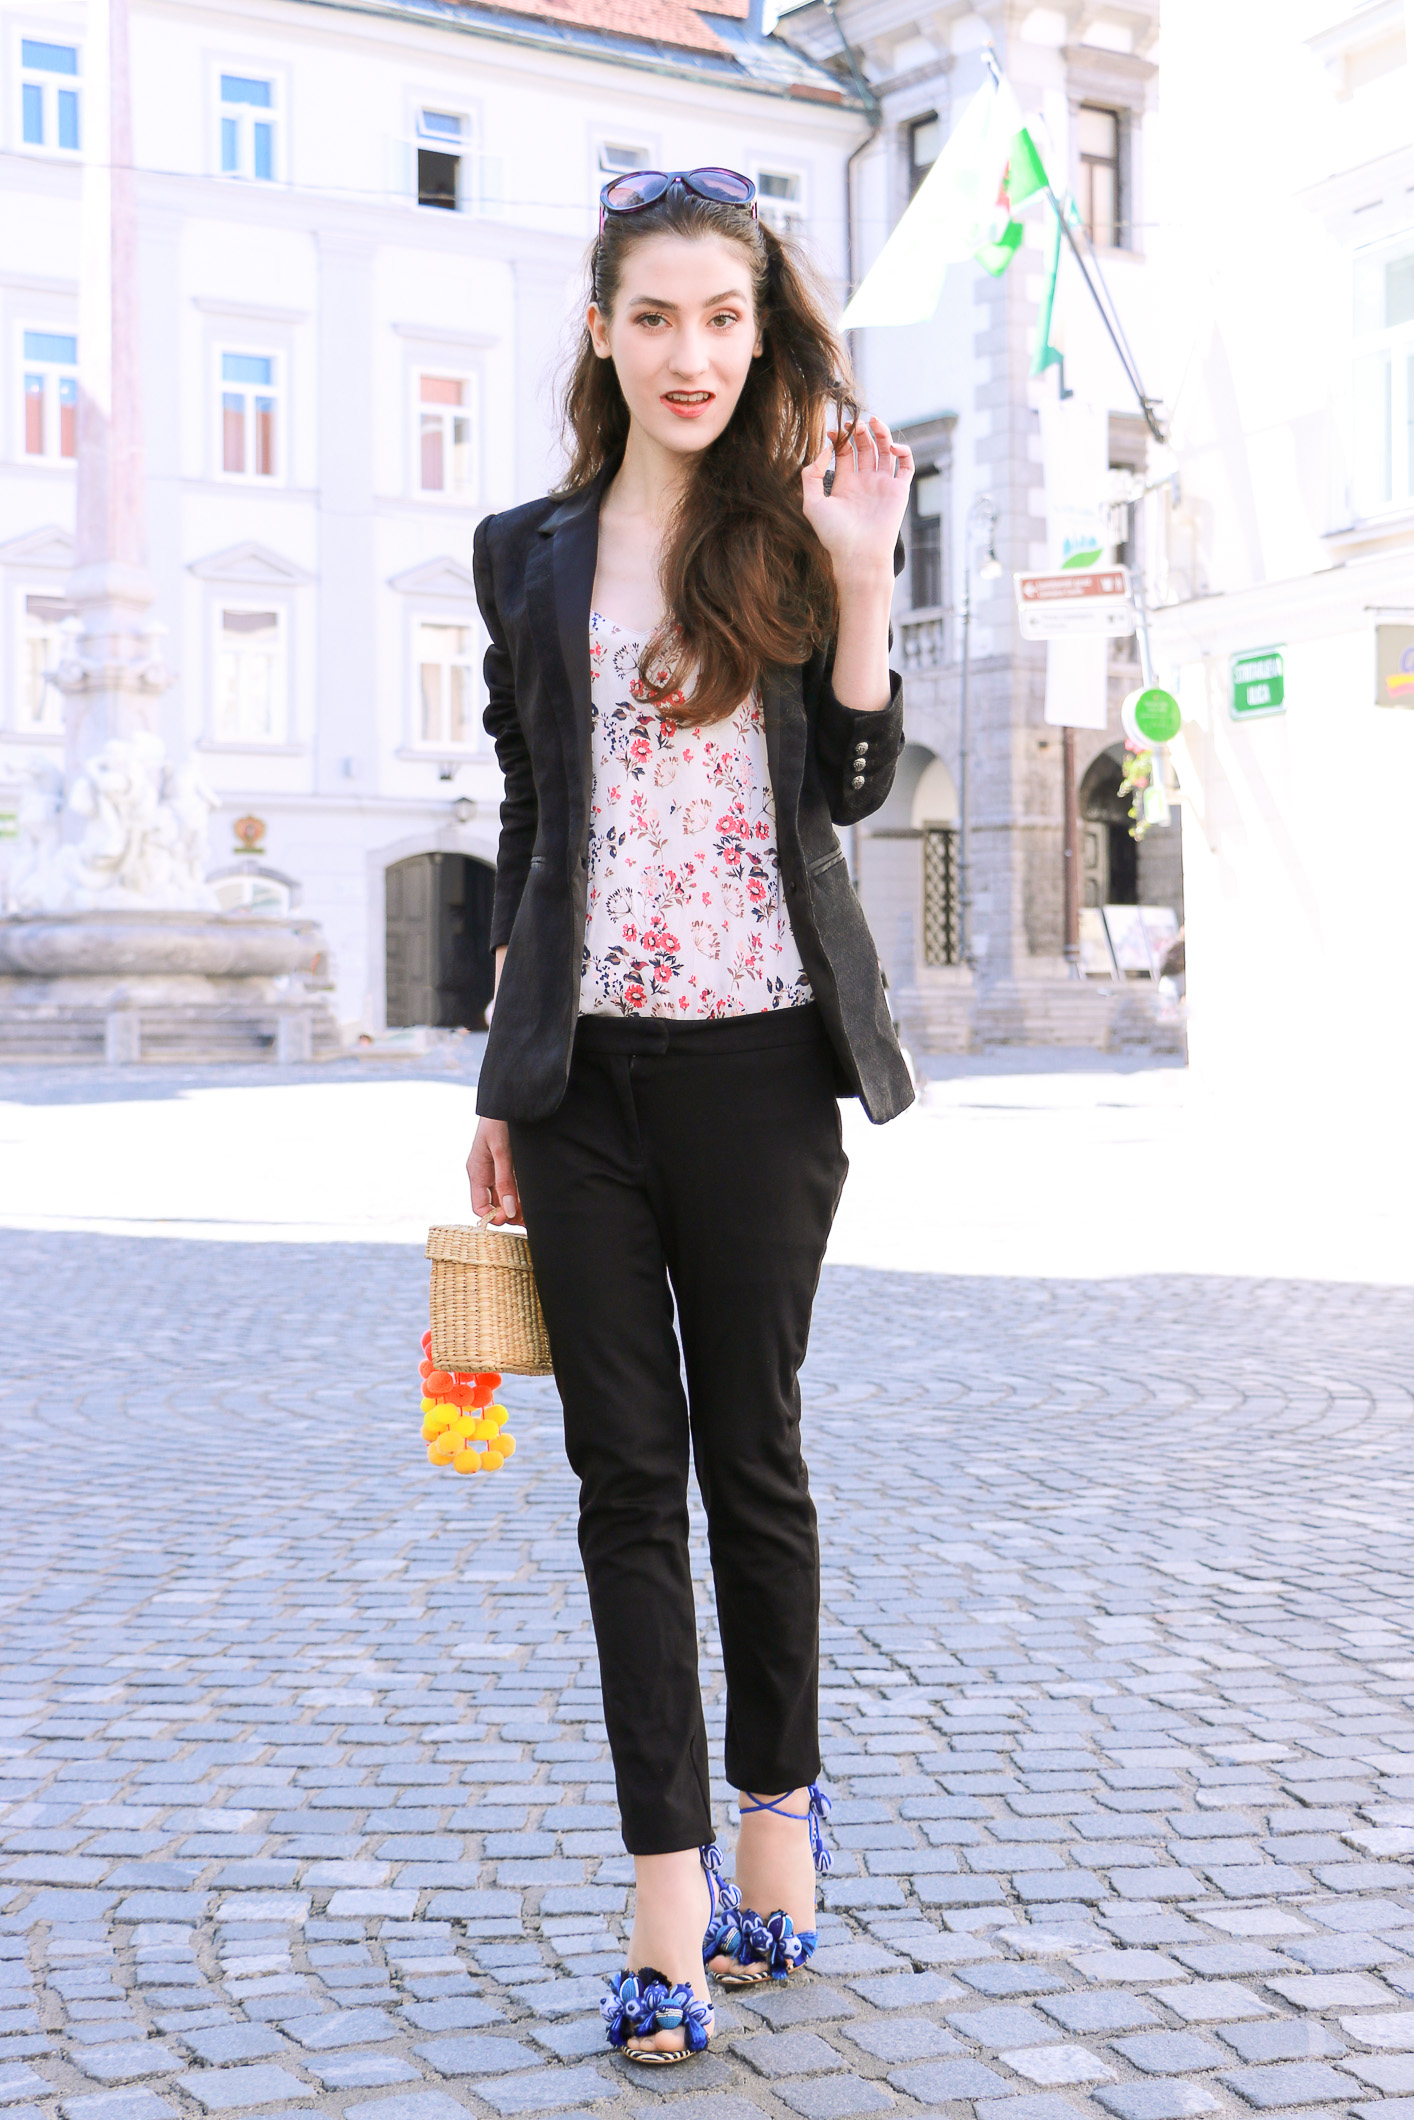 Fashion blogger Veronika Lipar of Brunette From Wall Street in a modern black suit